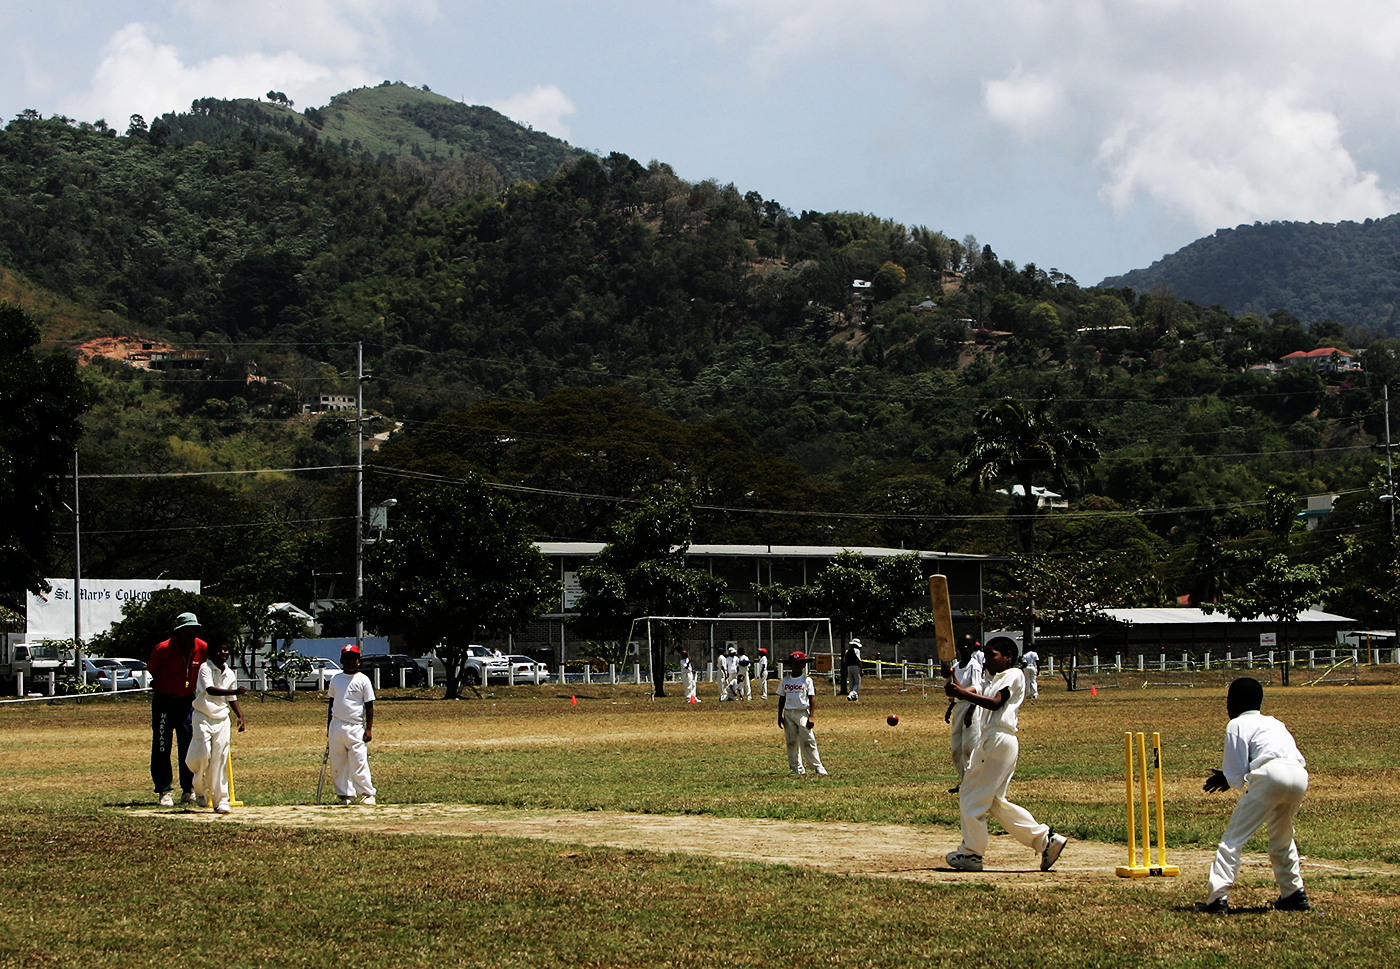 This is how we do it: some believe that the Caribbean game naturally has the flair and flamboyance that the T20 format welcomes